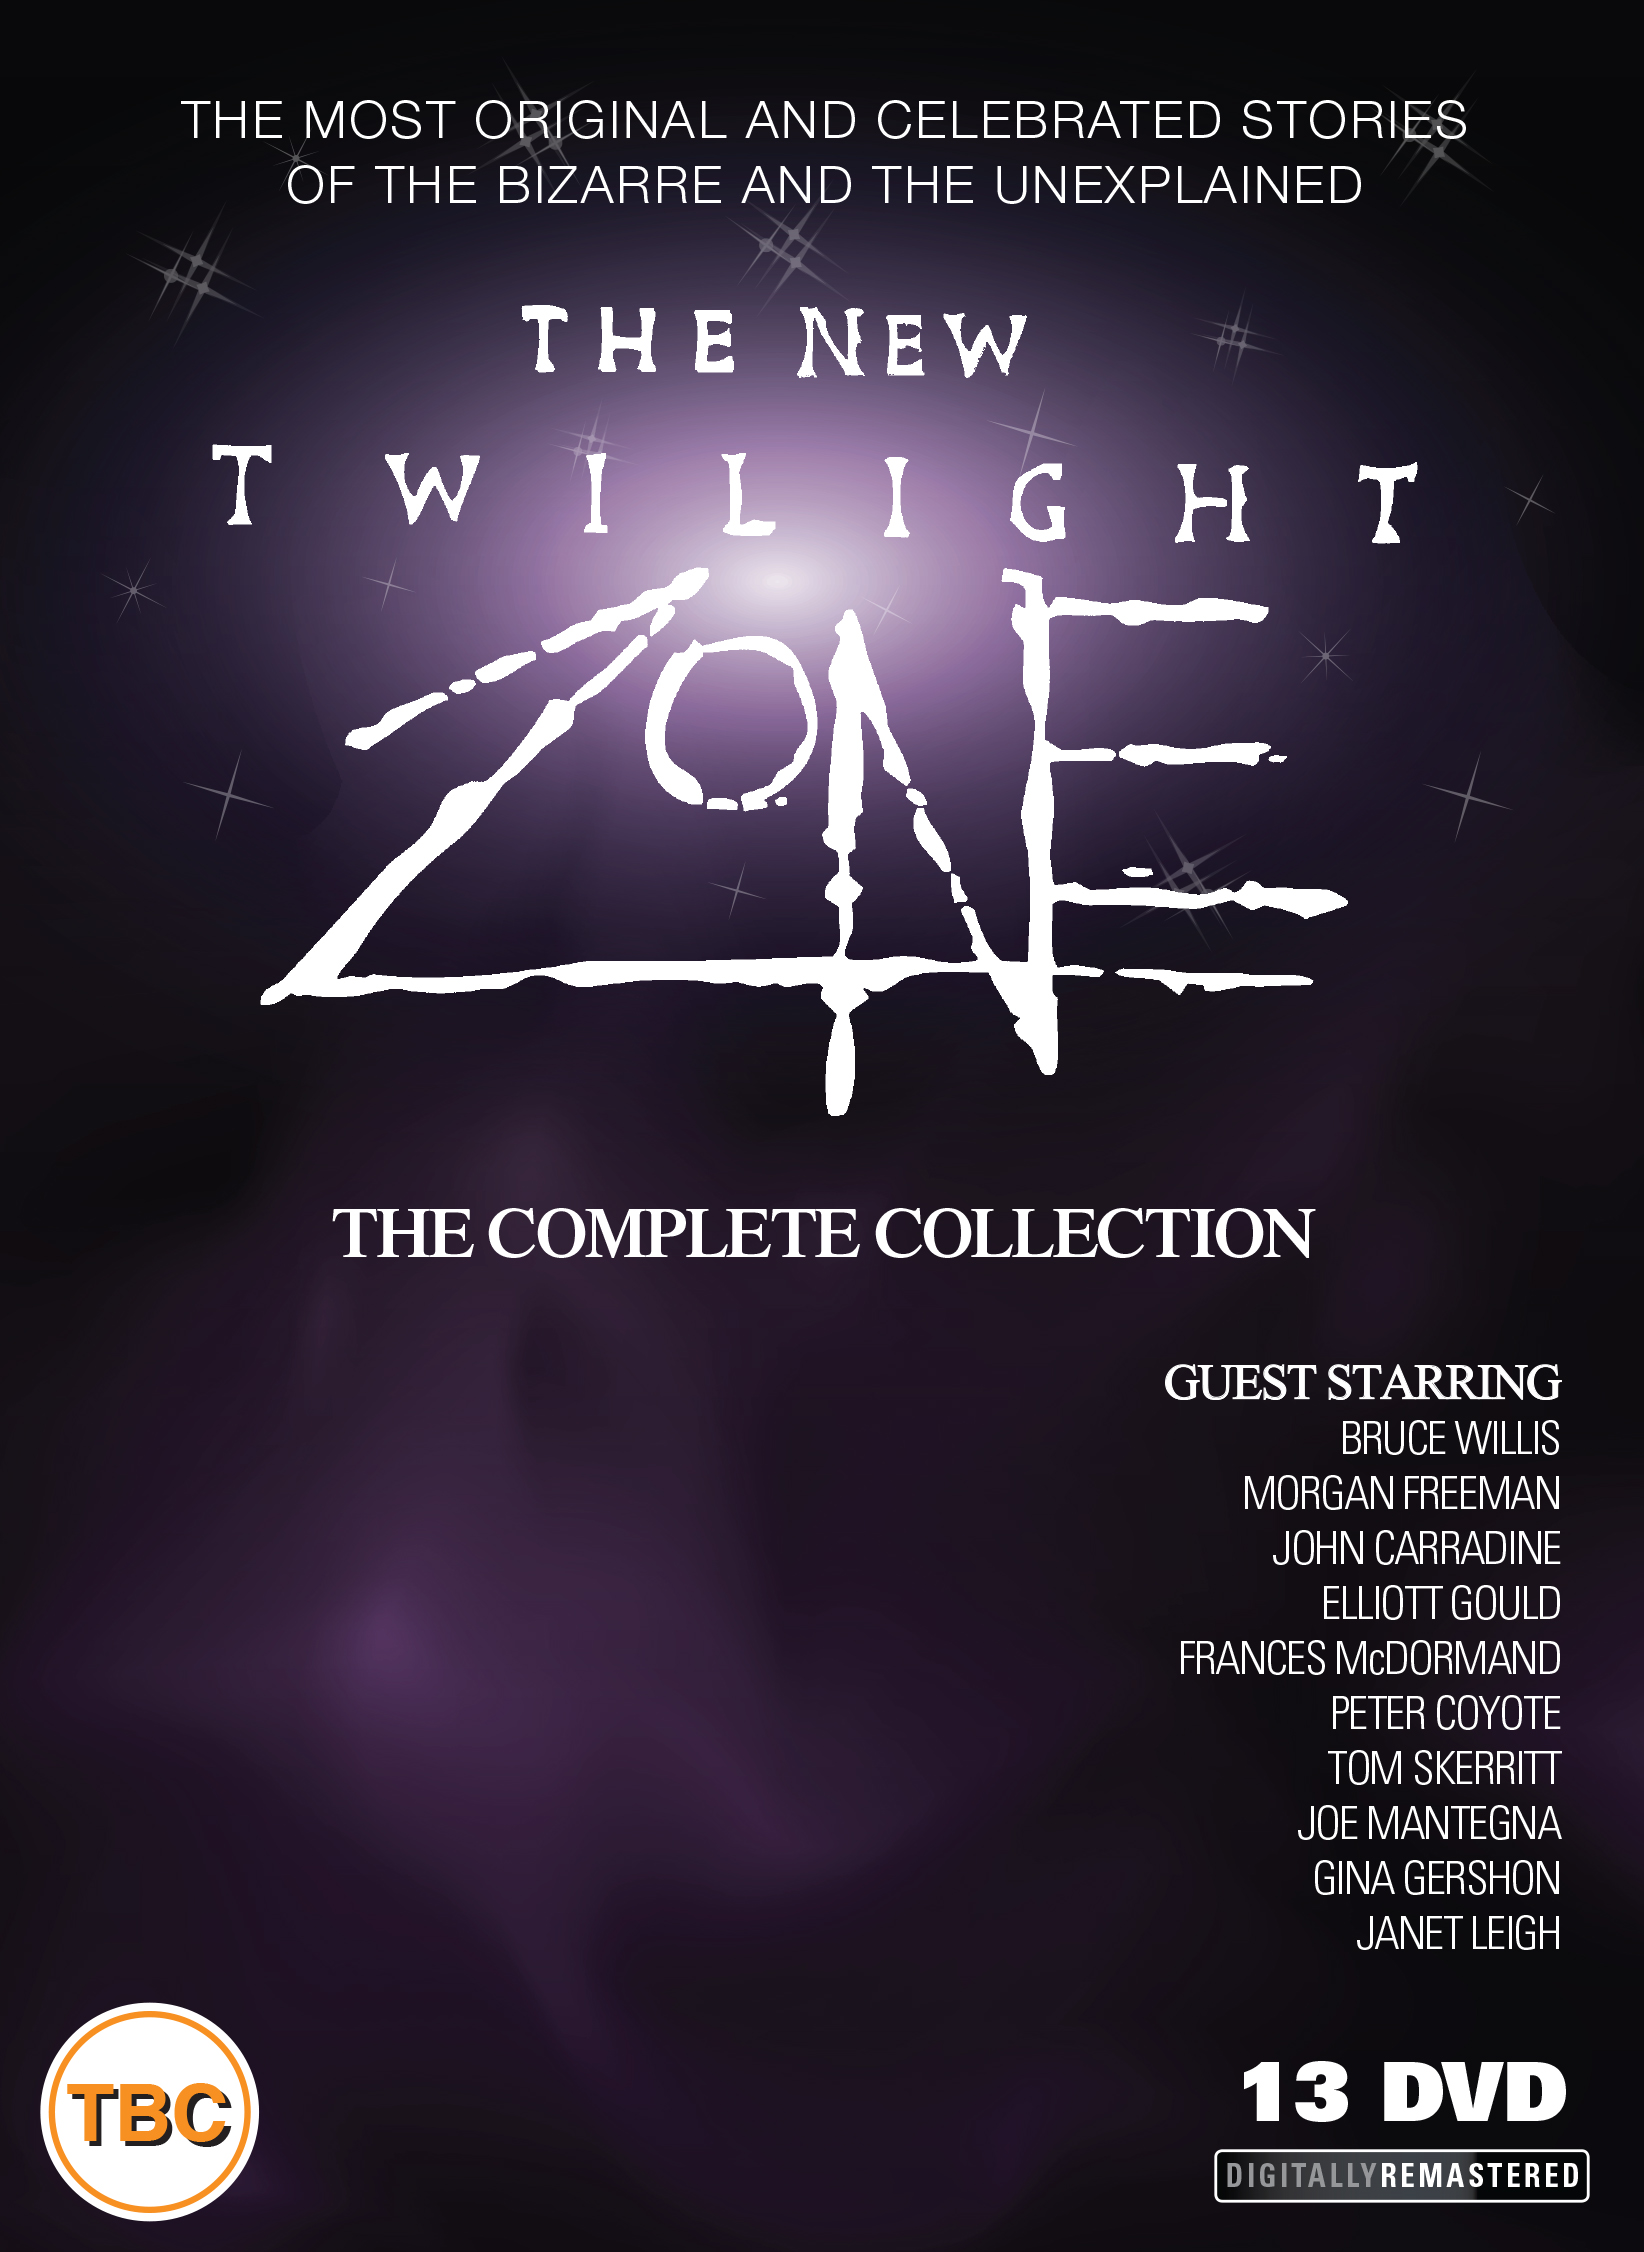 The New Twilight Zone The Complete Collection Fetch